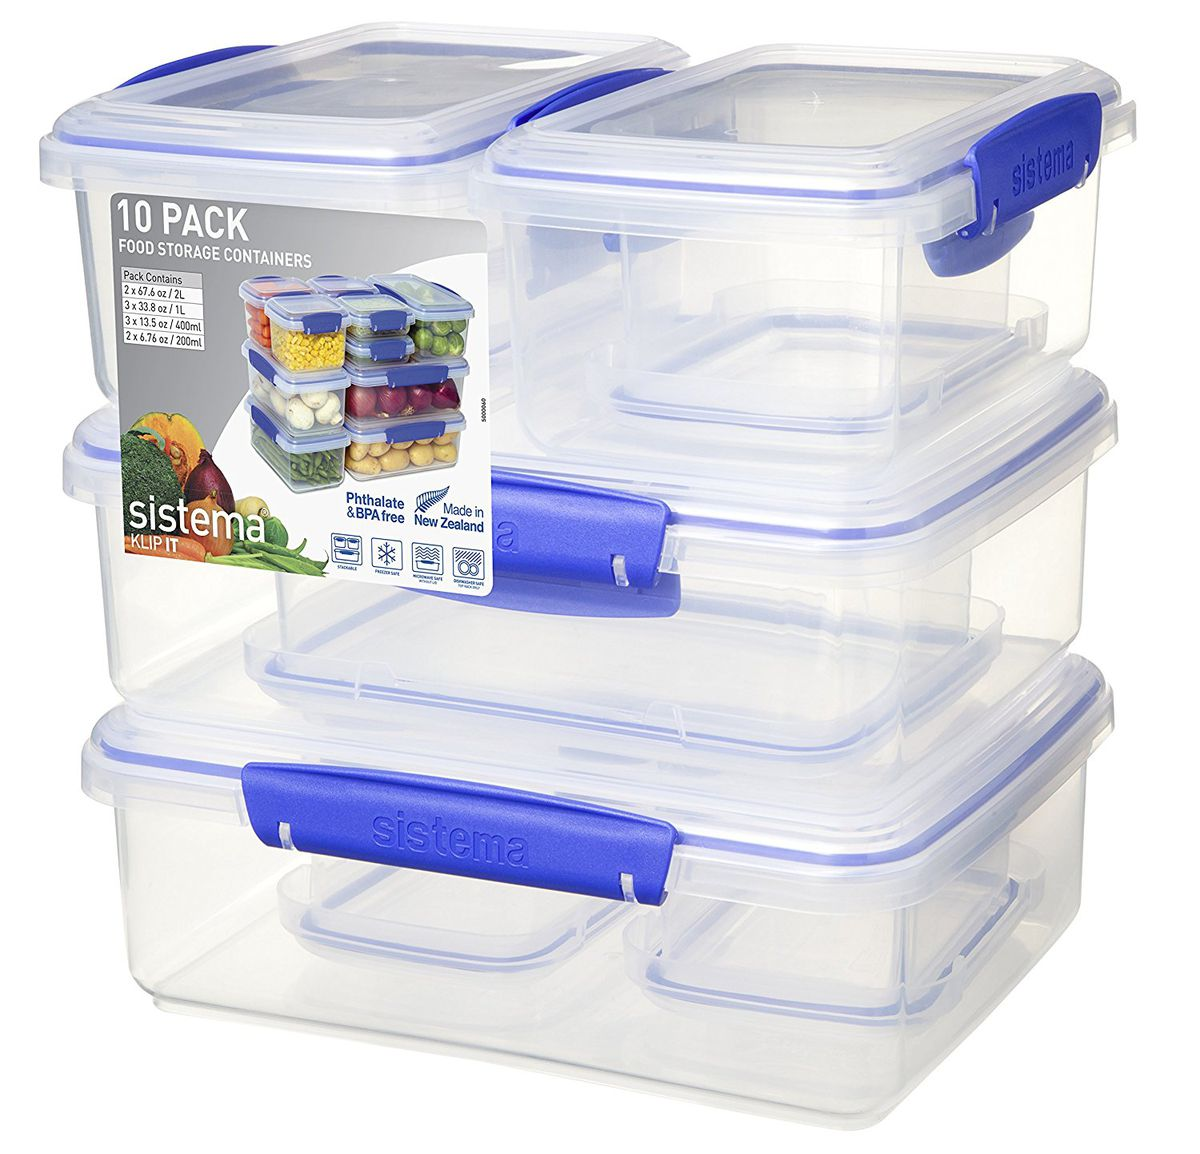 Sistema KLIP IT food storage containers are down to £10.99.